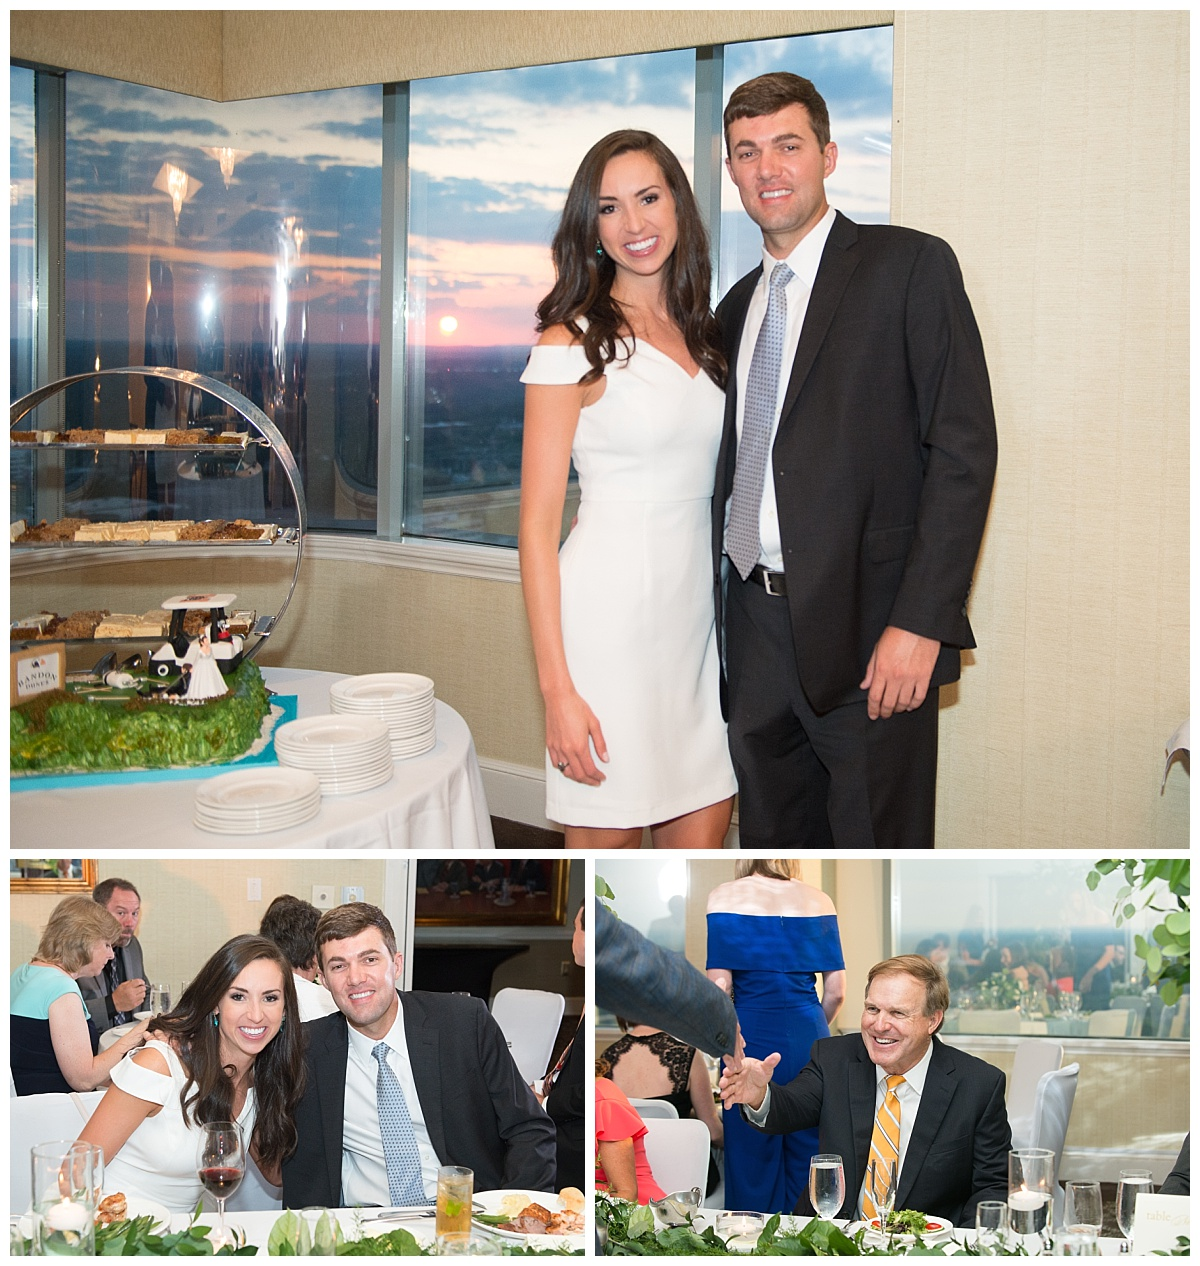 rehearsal dinner at Capital city club